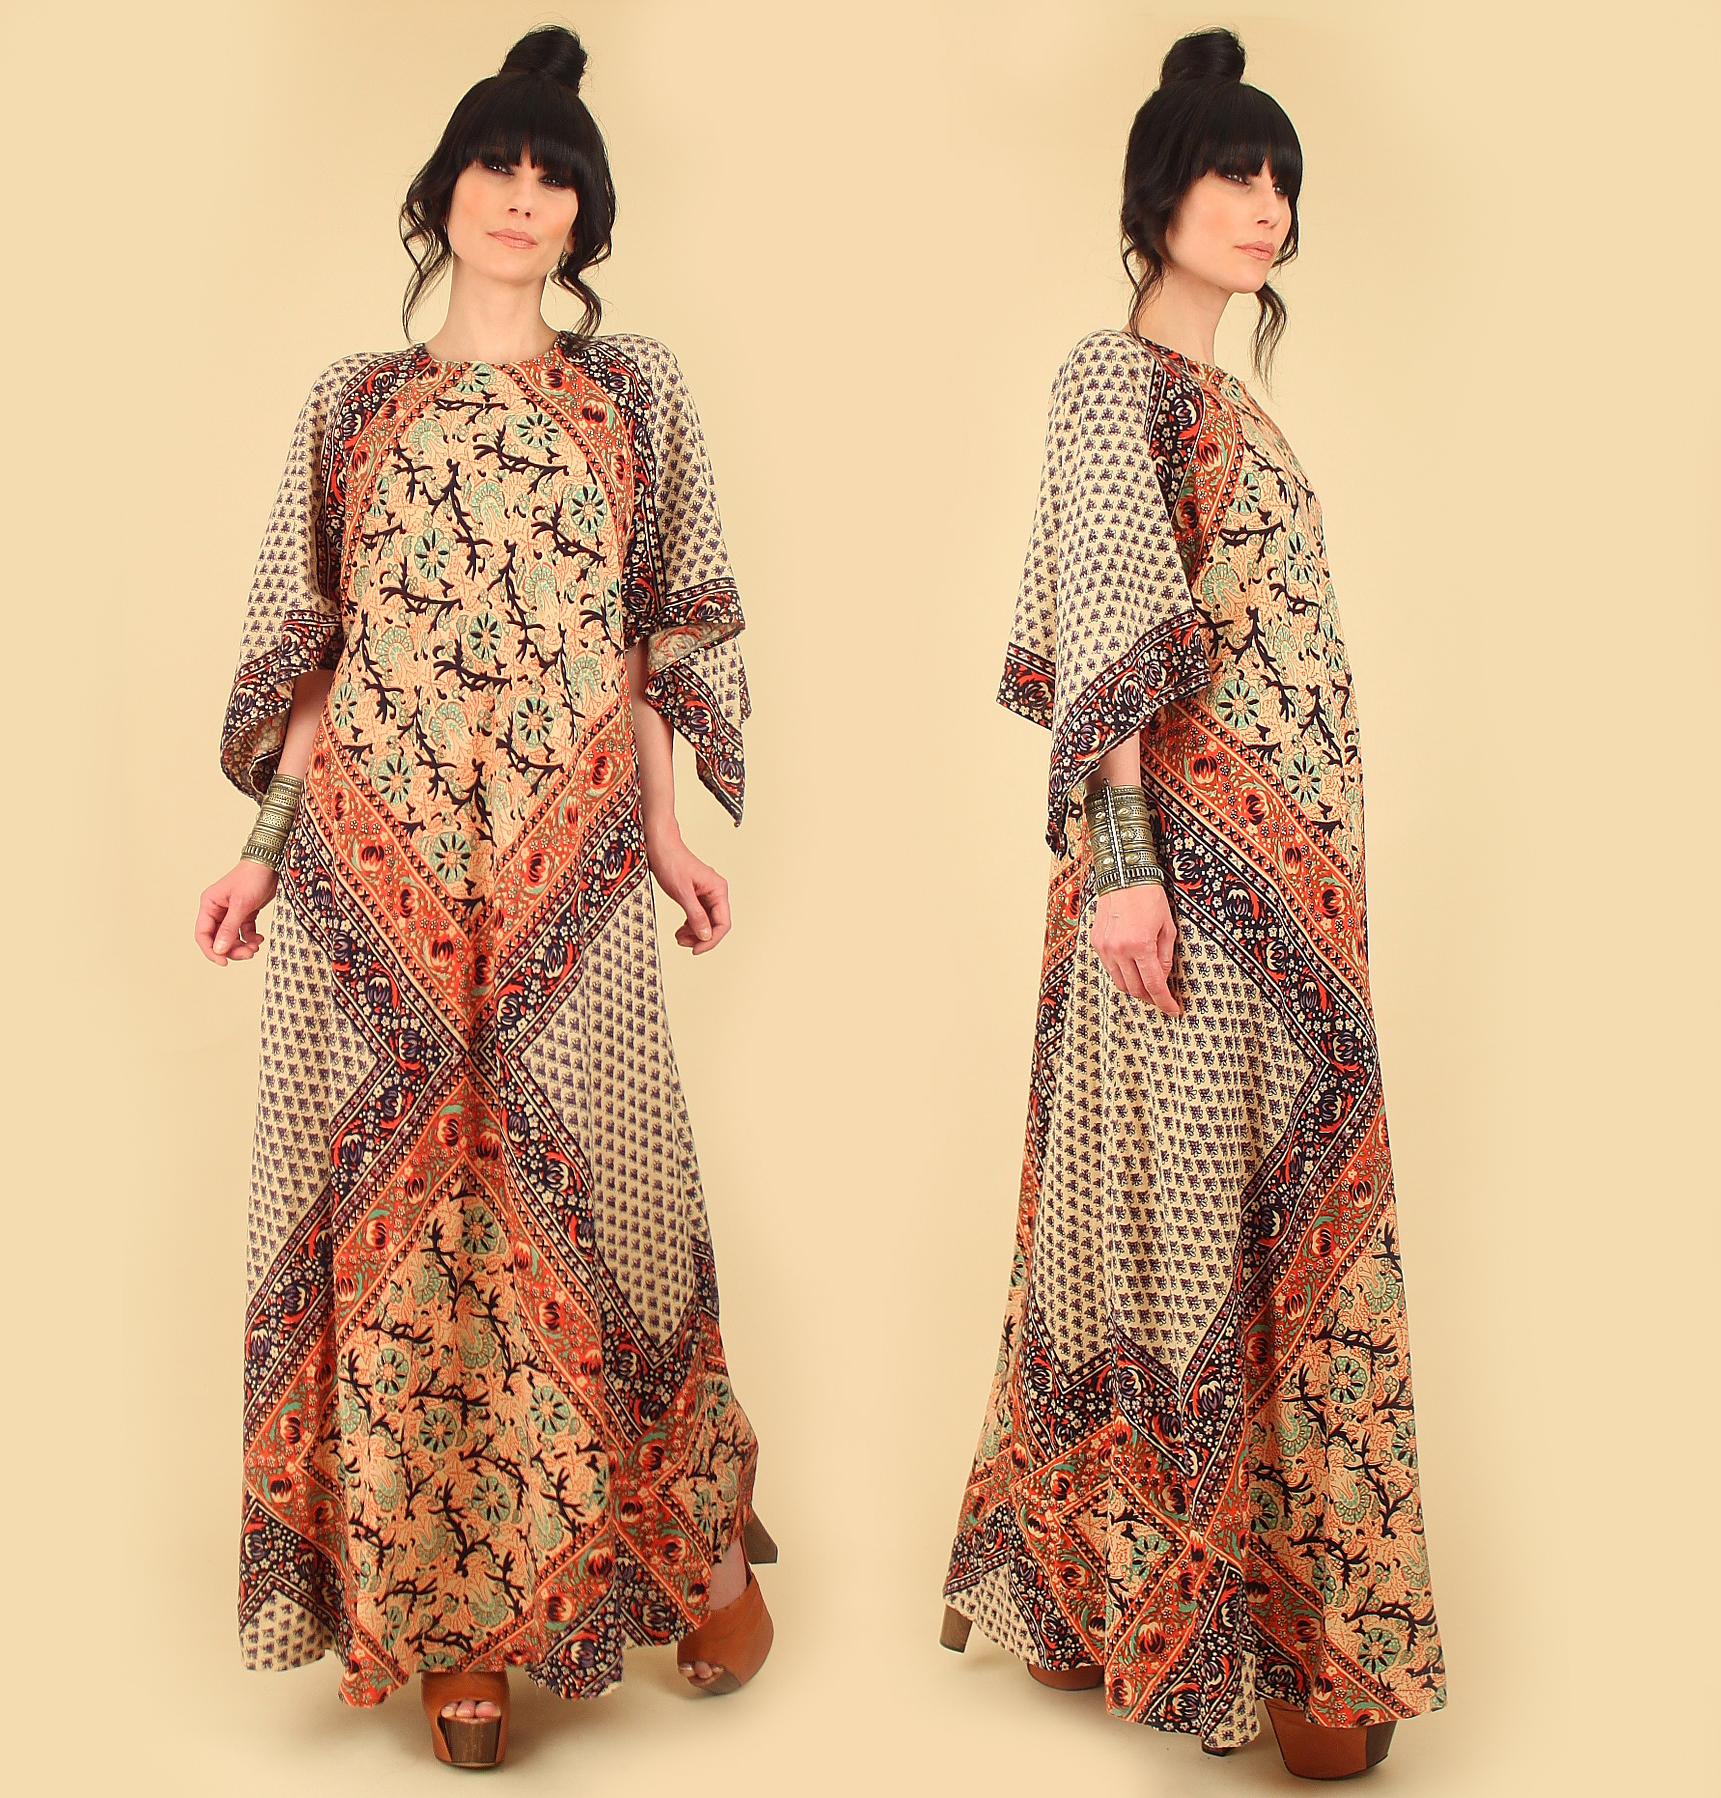 Vintage Bohemian Cotton Dresses 1970s Indian Gauze Cotton Authentic True  Real Vintage Woodstock \u2014 Hellhound Vintage